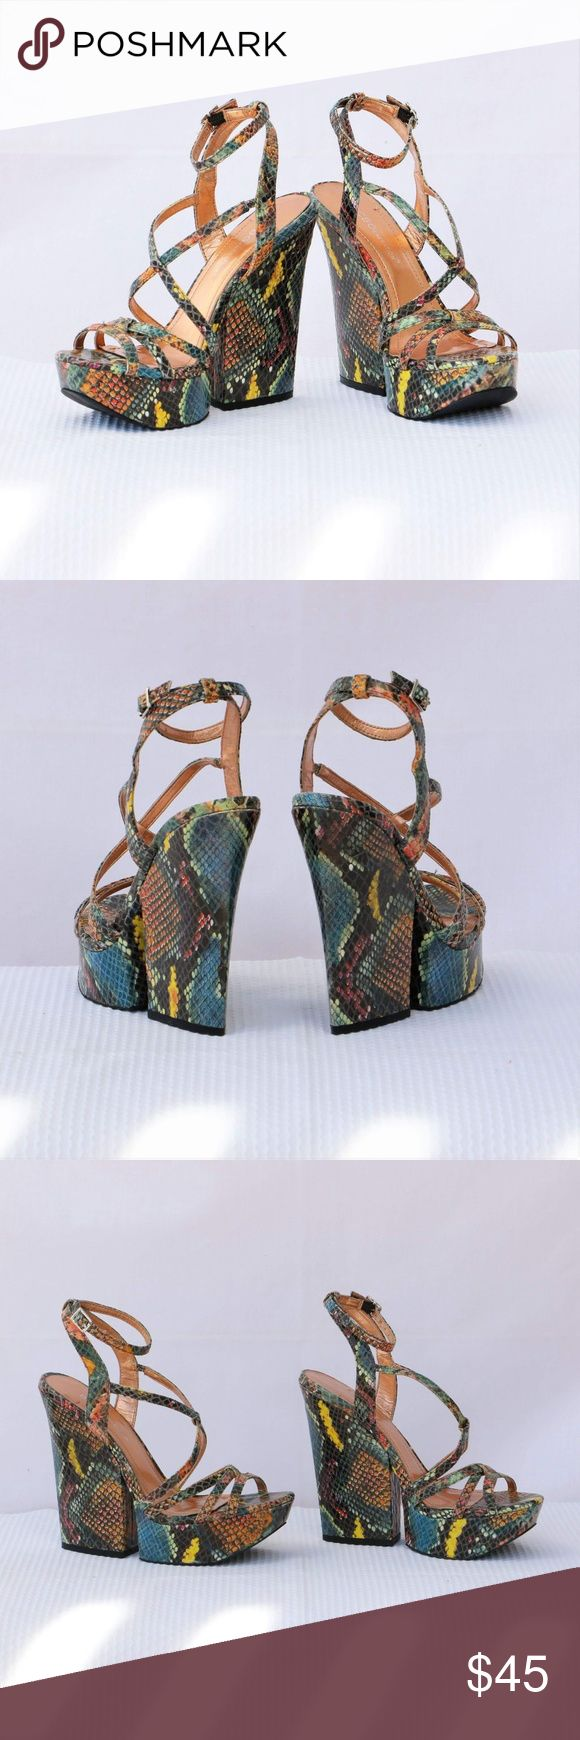 """BCBG Multi-Colored Wedge Strappy Heels: size 5.5M BCBGeneration Multi-colored Snake print Platform/Wedge Strappy Heels in size 5.5M.  Very cute heels with adjustable ankle strap and small elastic band for comfort.  This is worn item as shown in photos and without original box item. Heel height: 5 1/4"""" Platform height: 1 1/2 BCBGeneration Shoes Wedges"""